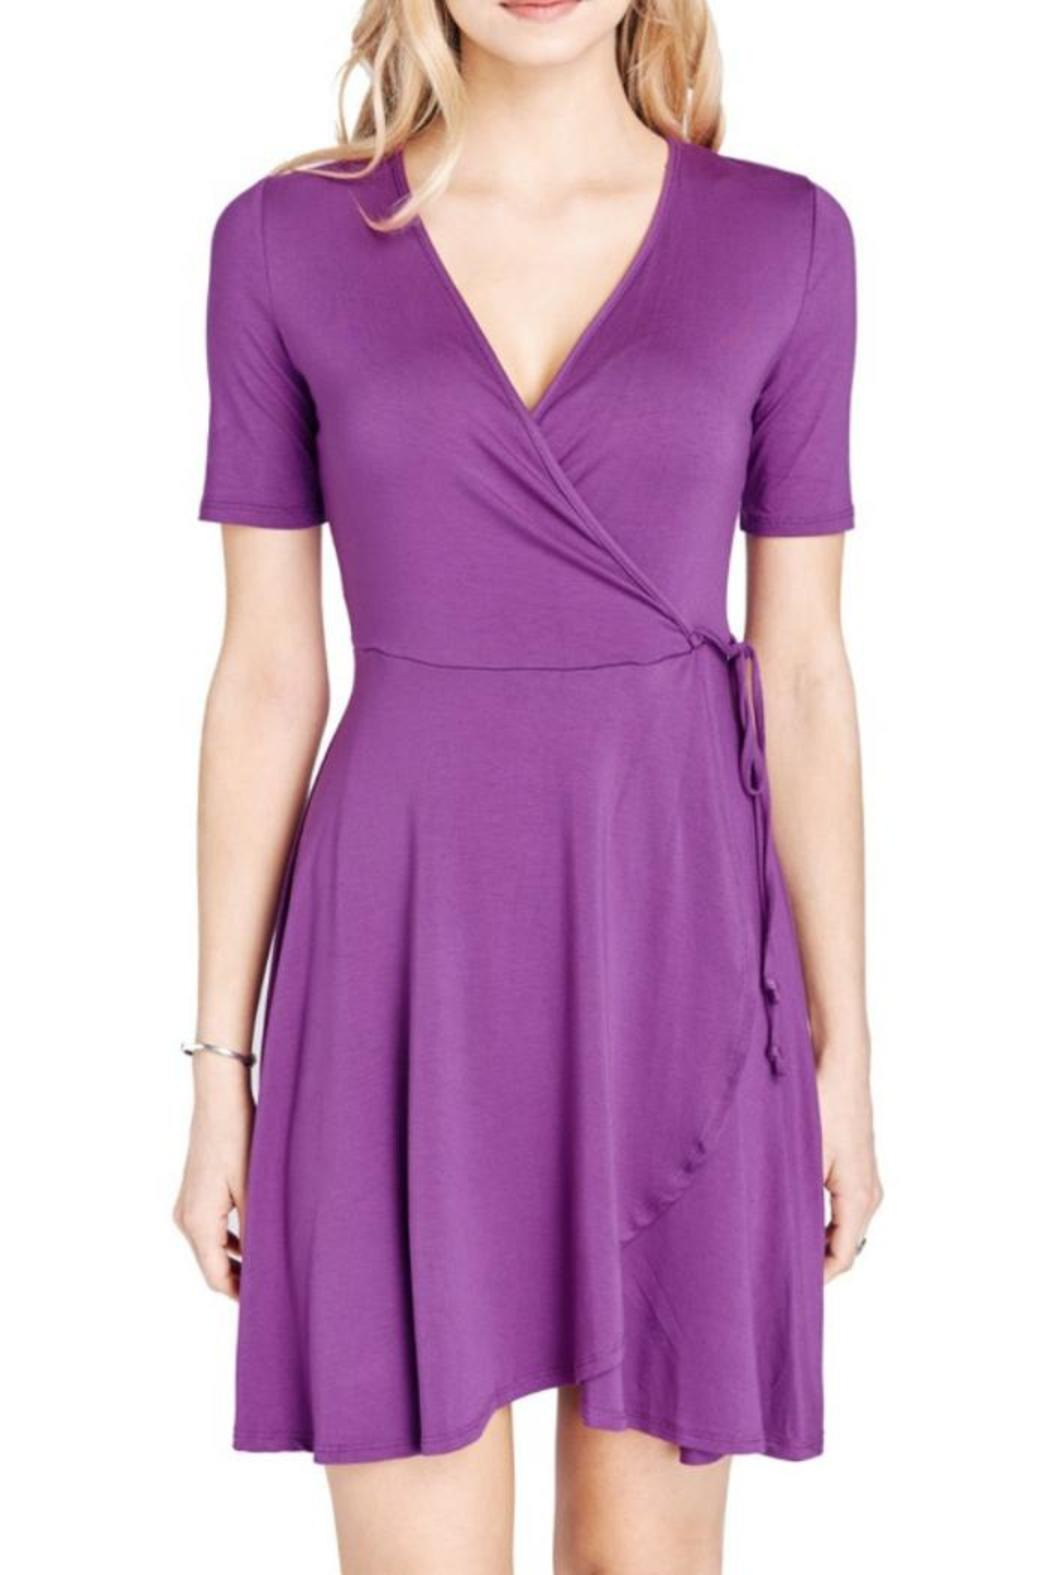 Mai Tai Purple Wrap Dress - Main Image